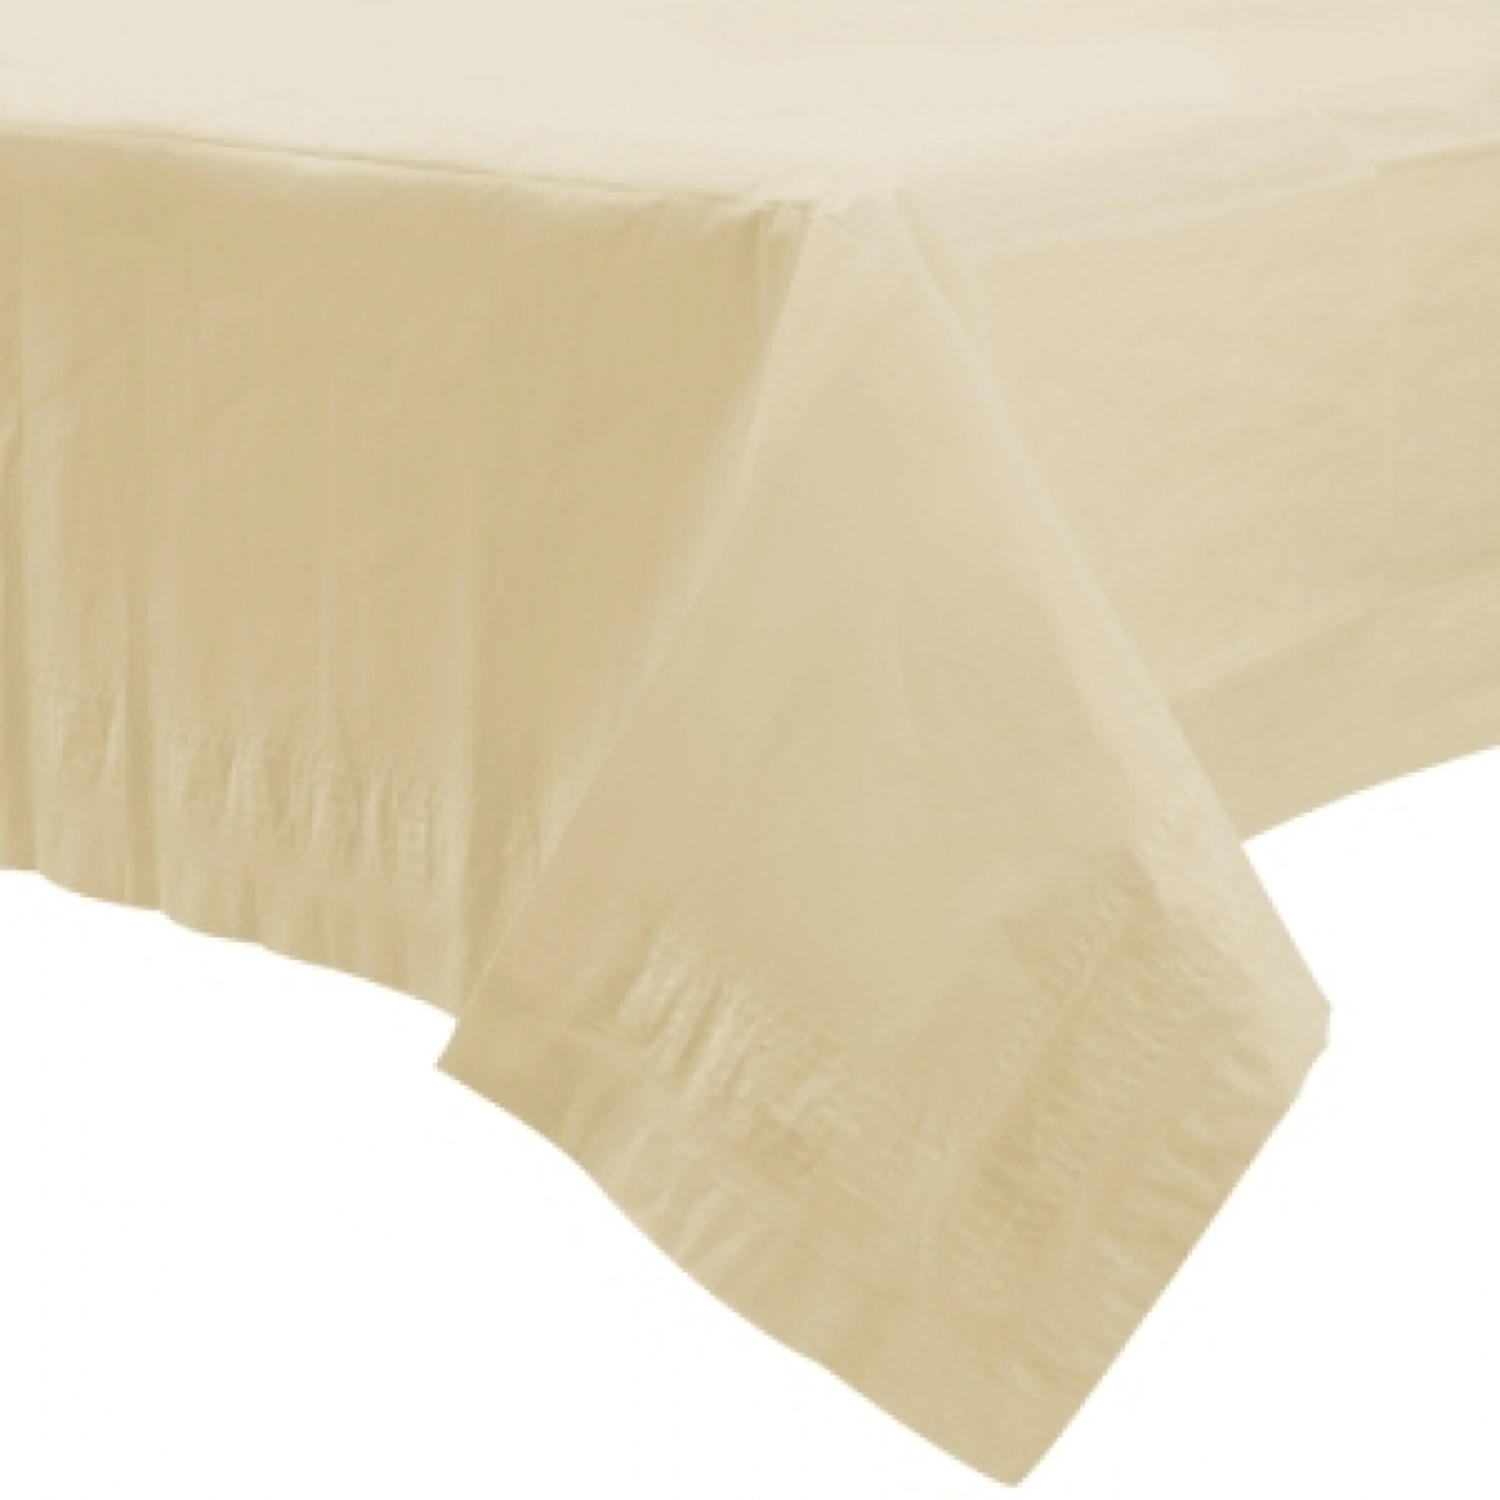 Ivory table cover